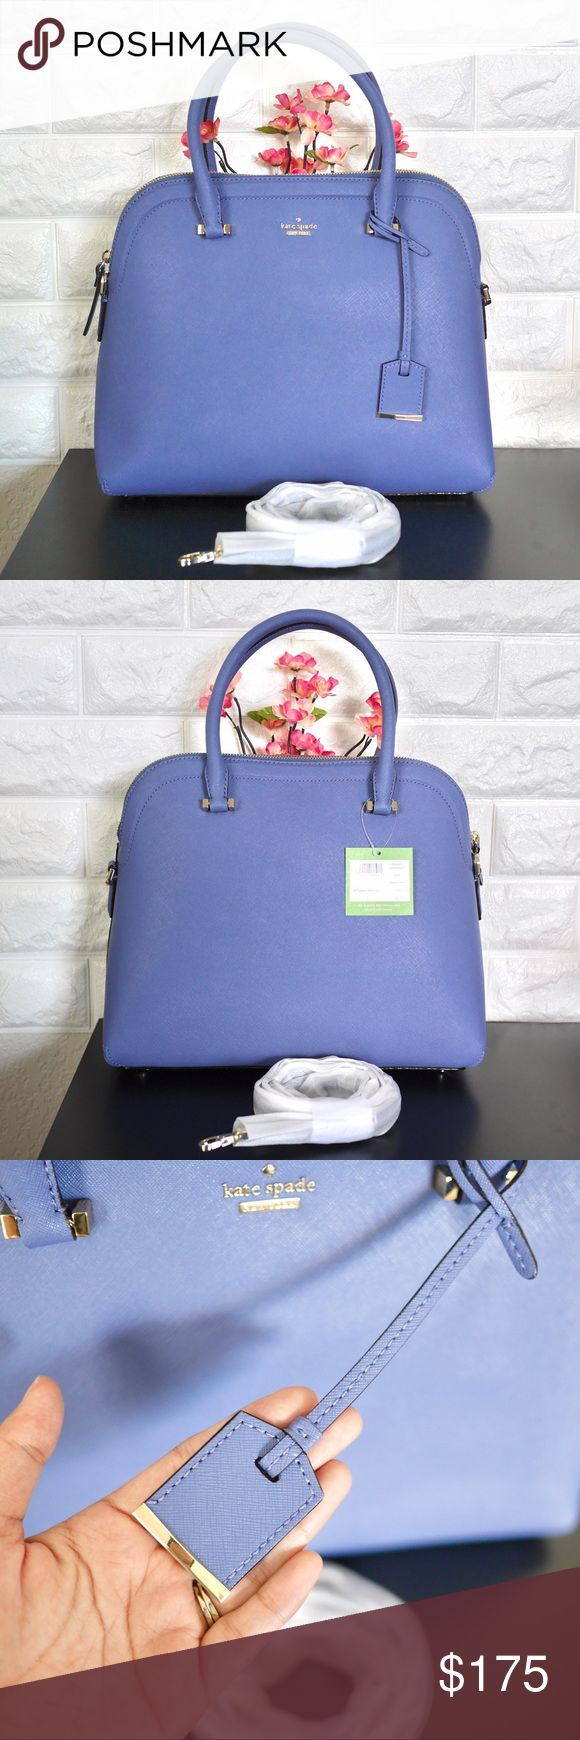 """💖Kate Spade Cameron Street Margot NWT. Color: Oyster Blue Material: Crosshatched Leather Dimension: 12.7L x 10H x 5.5D Strap Drop: 18.5""""  • Will come in original Kate Spade packaging and dustbag.  • Price is firm. Sell only, No trades. kate spade Bags Satchels"""